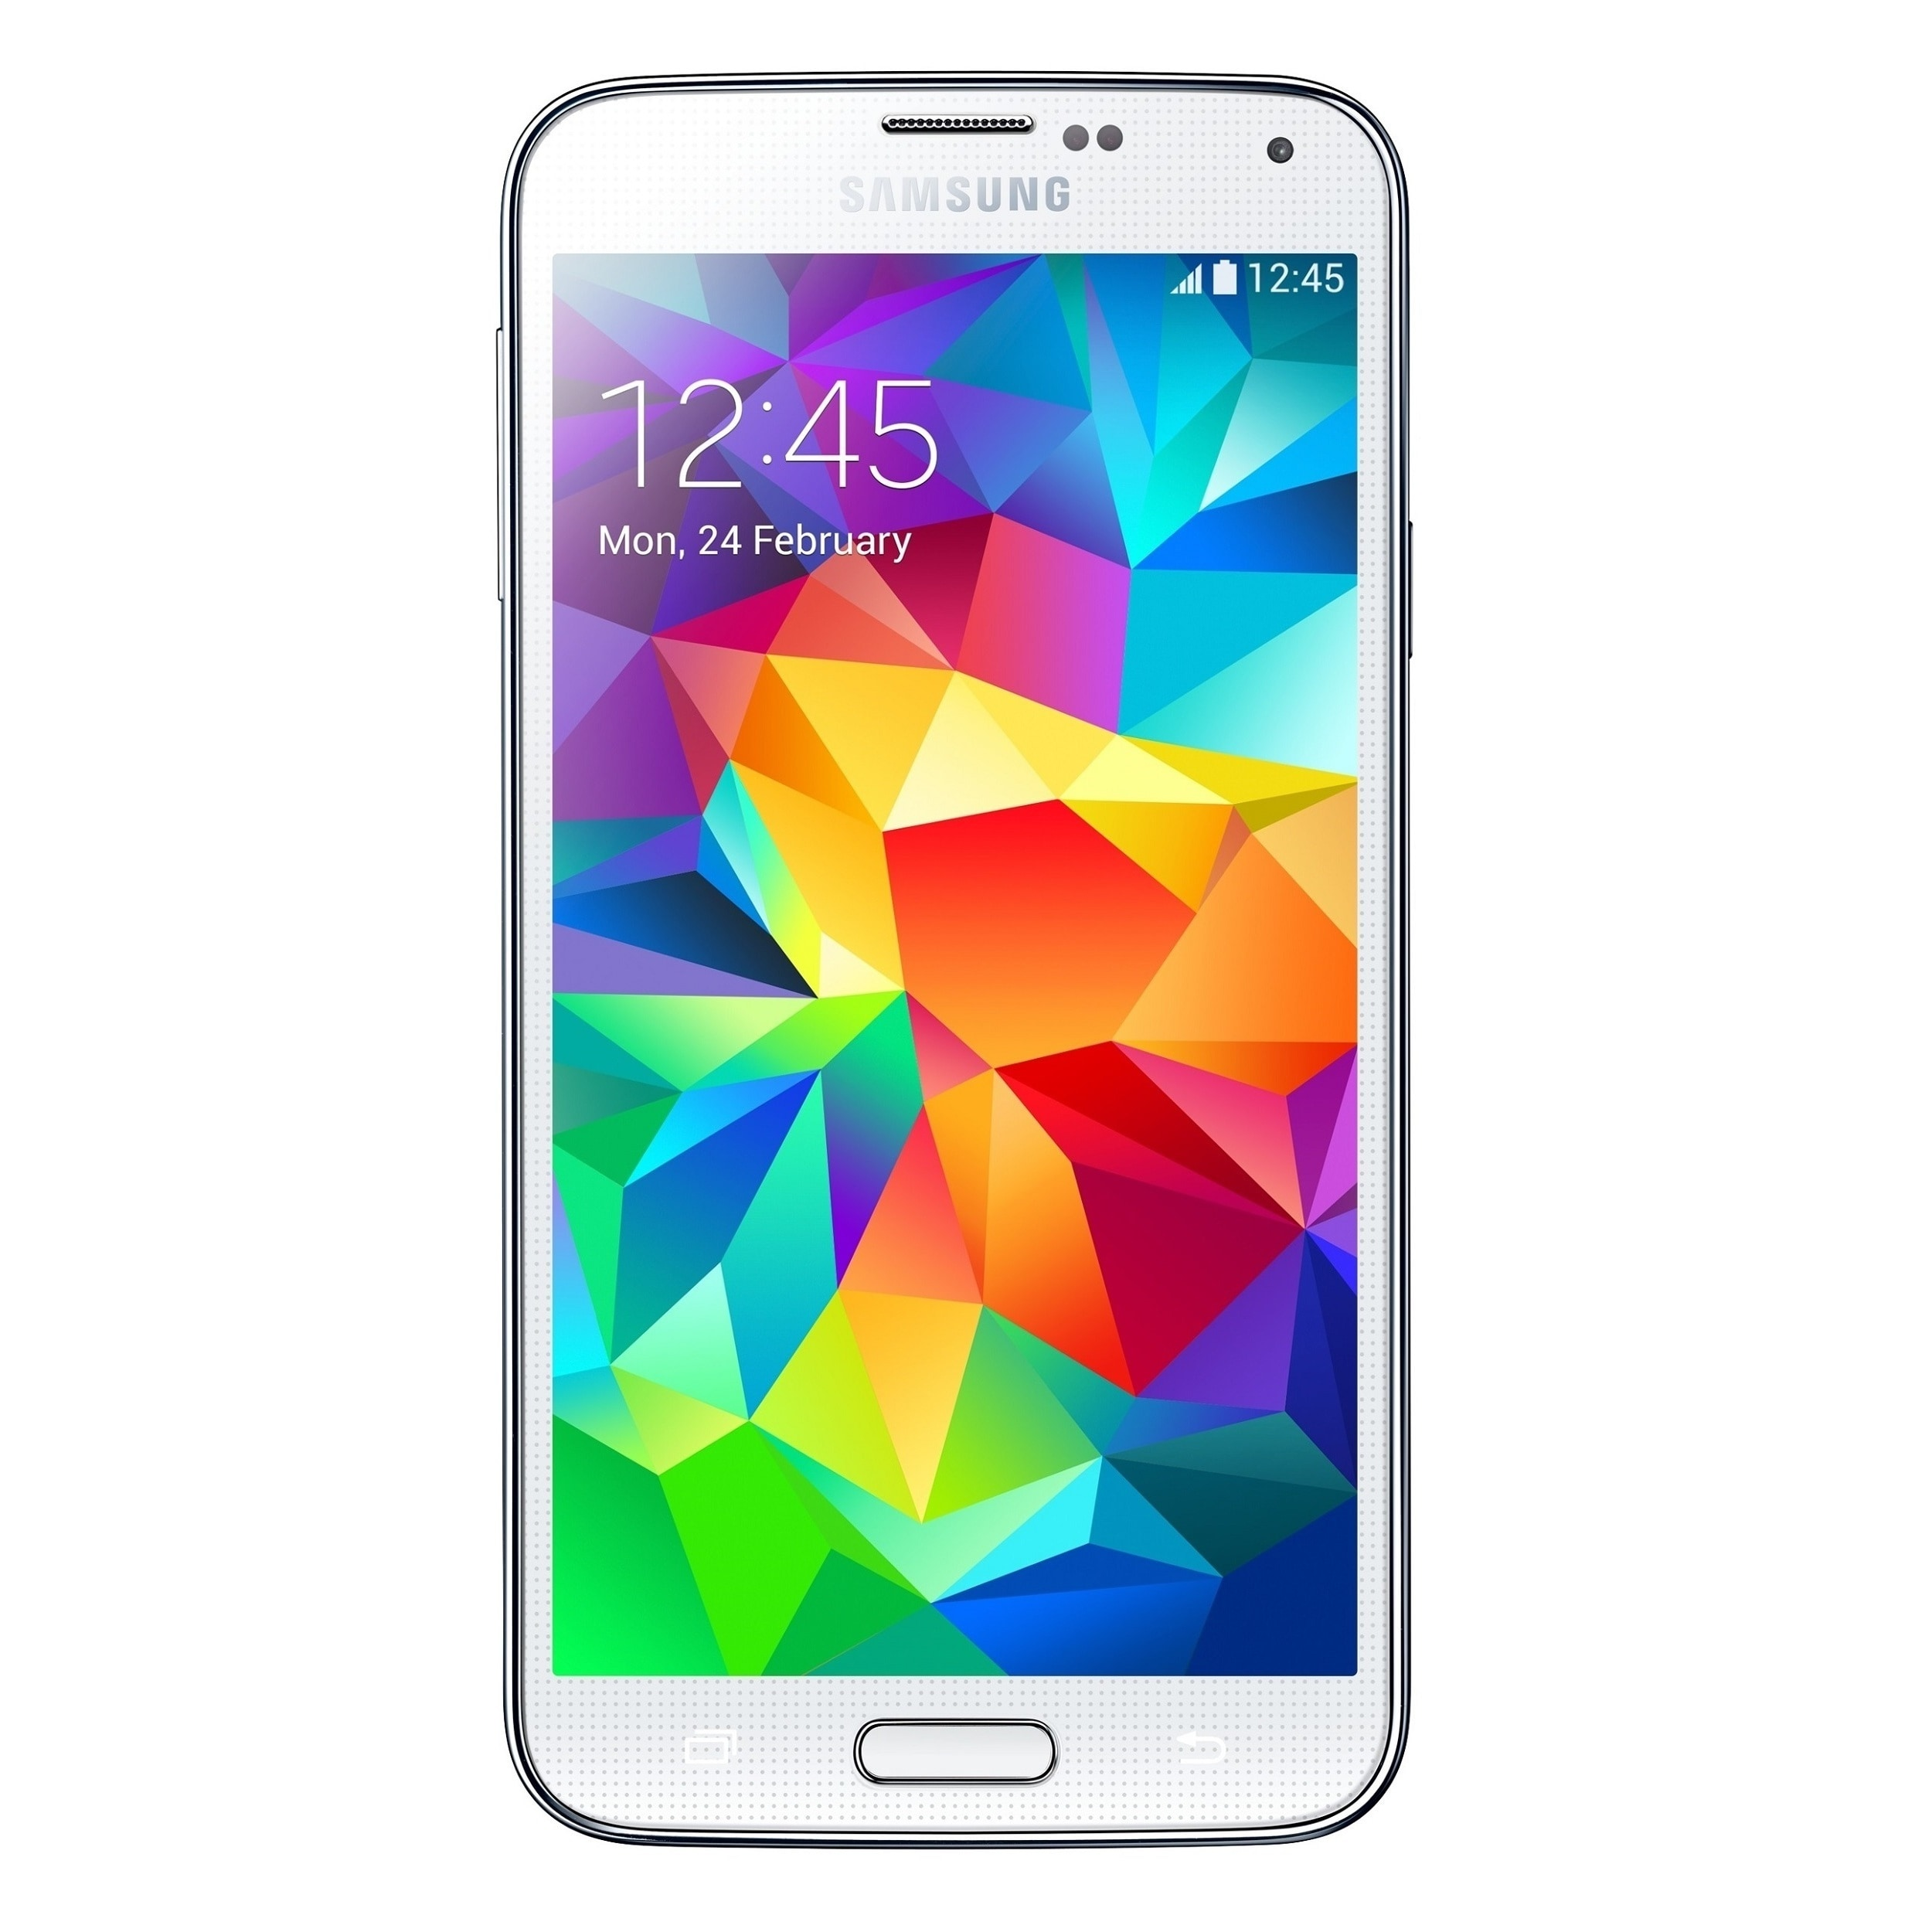 Samsung Galaxy S5 G900A 16GB Unlocked GSM 4G LTE Android ...